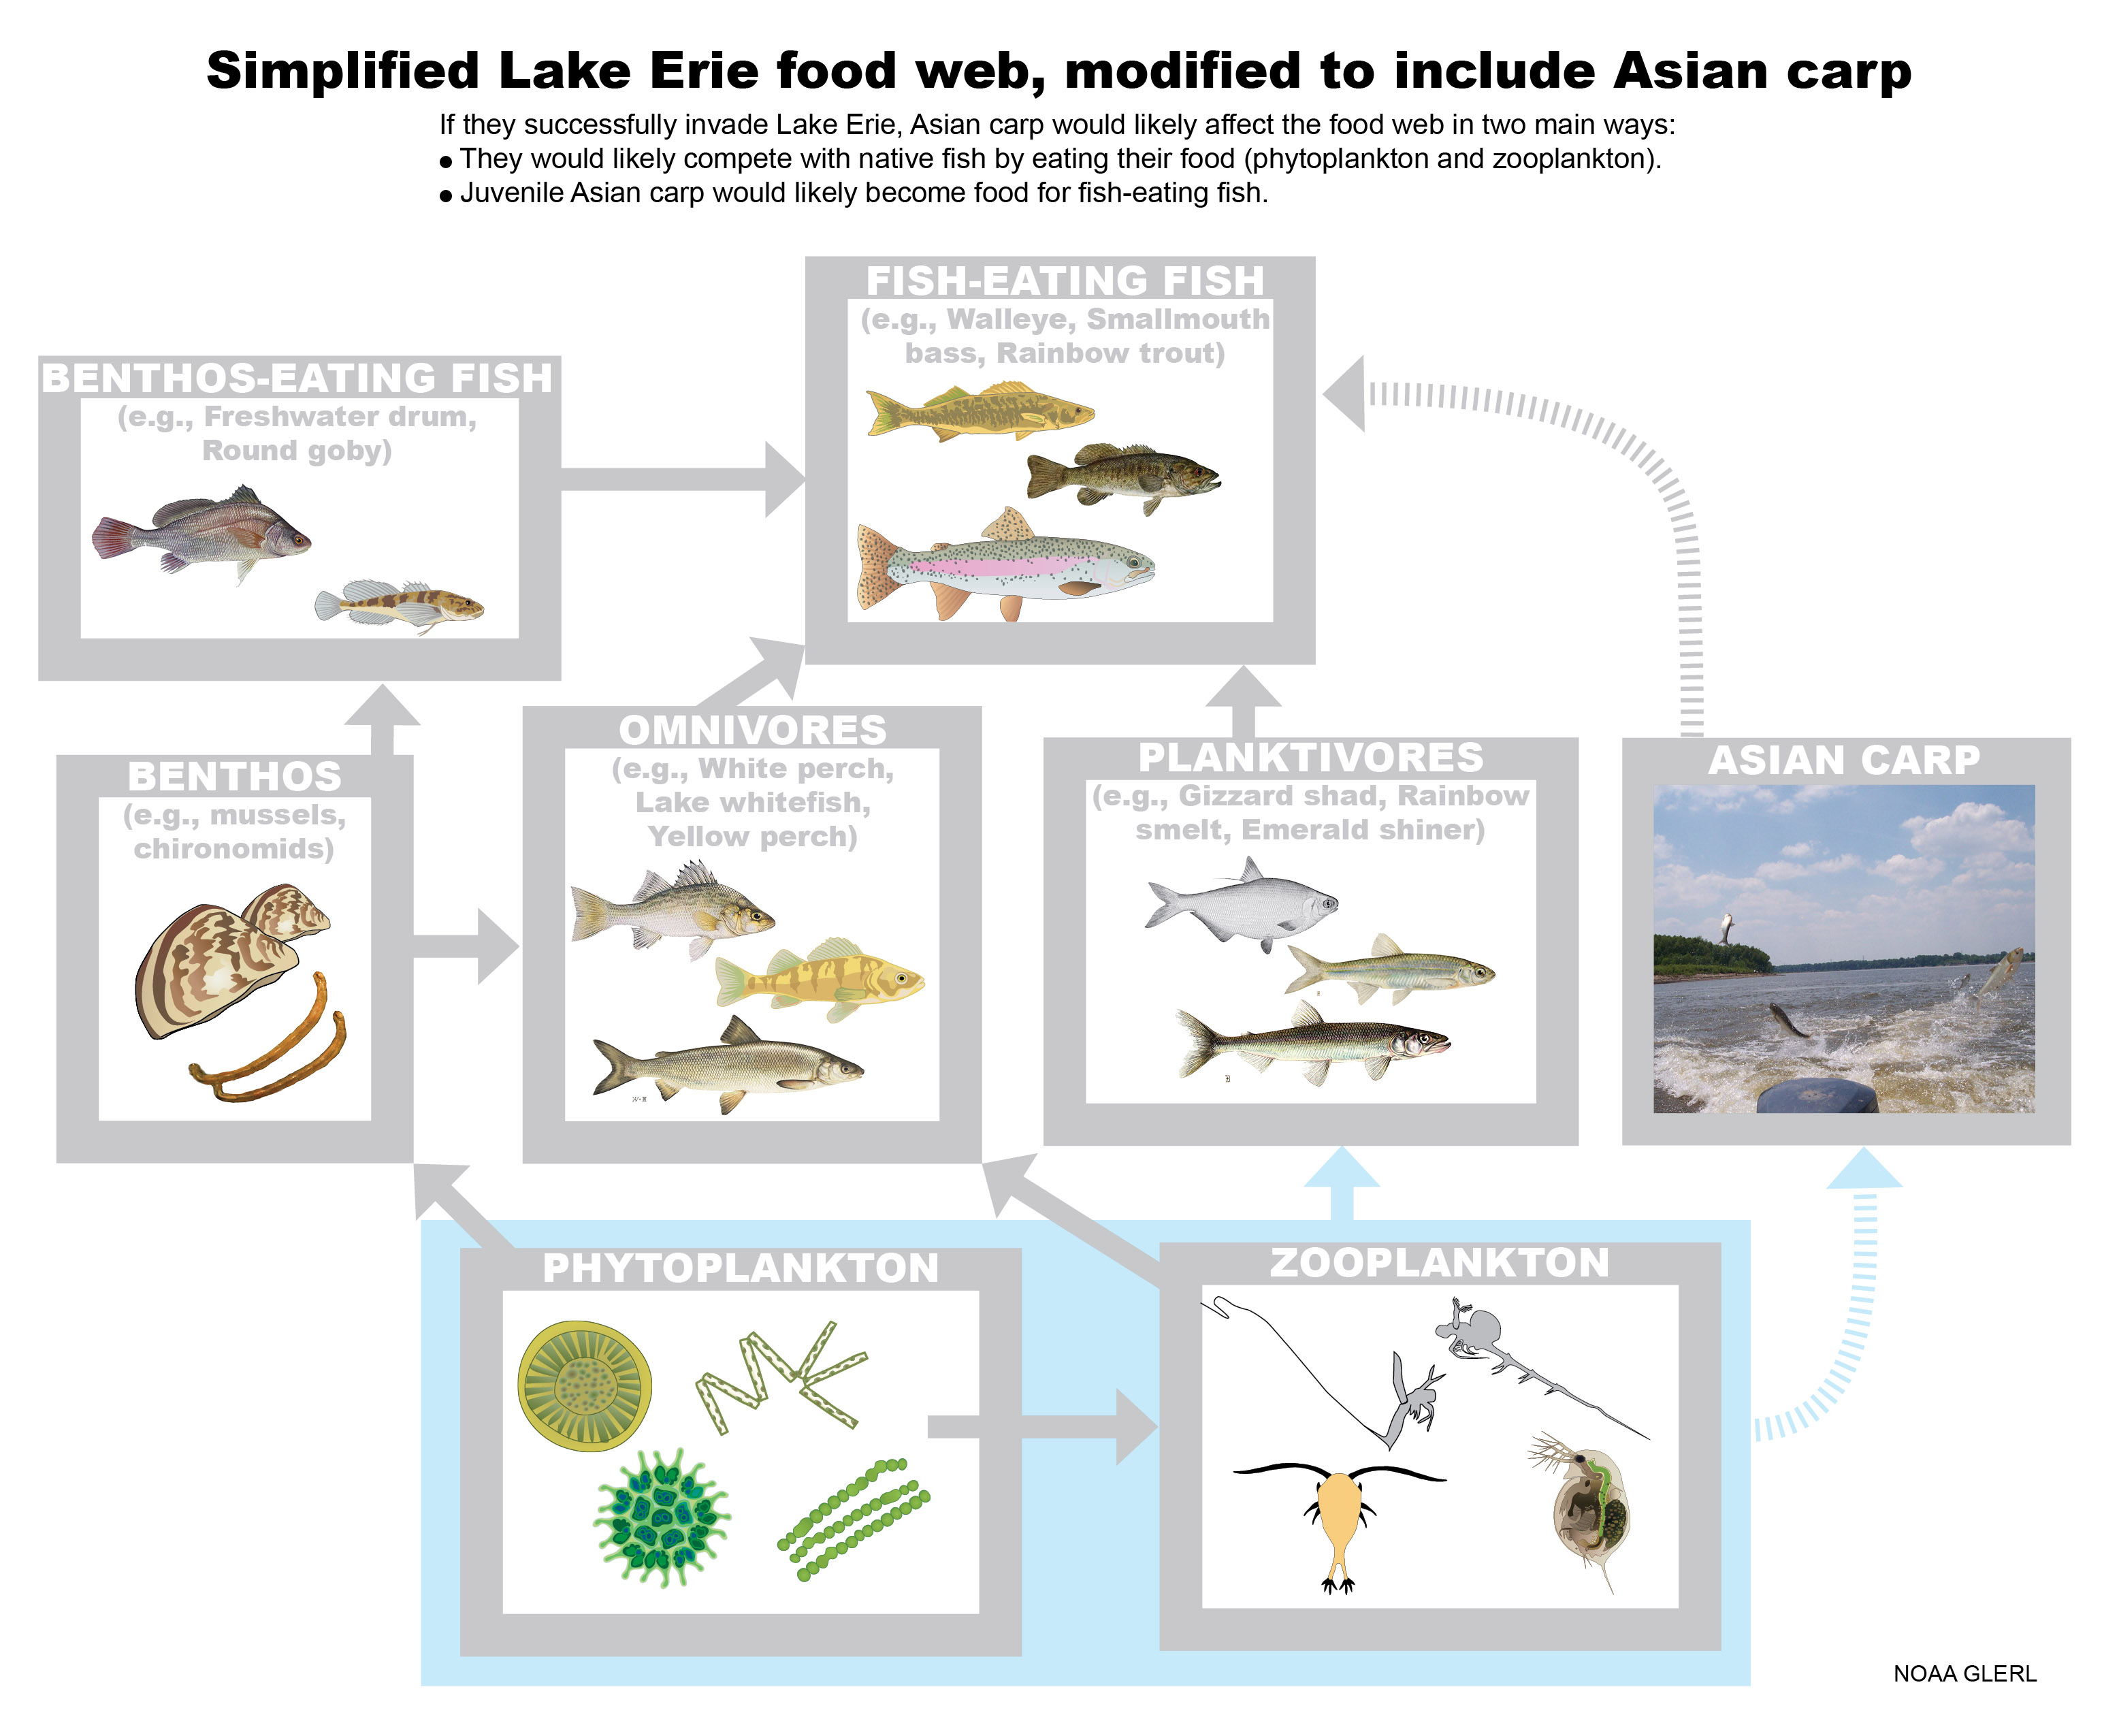 Simplified Lake Erie food web, modified to include Asian carp